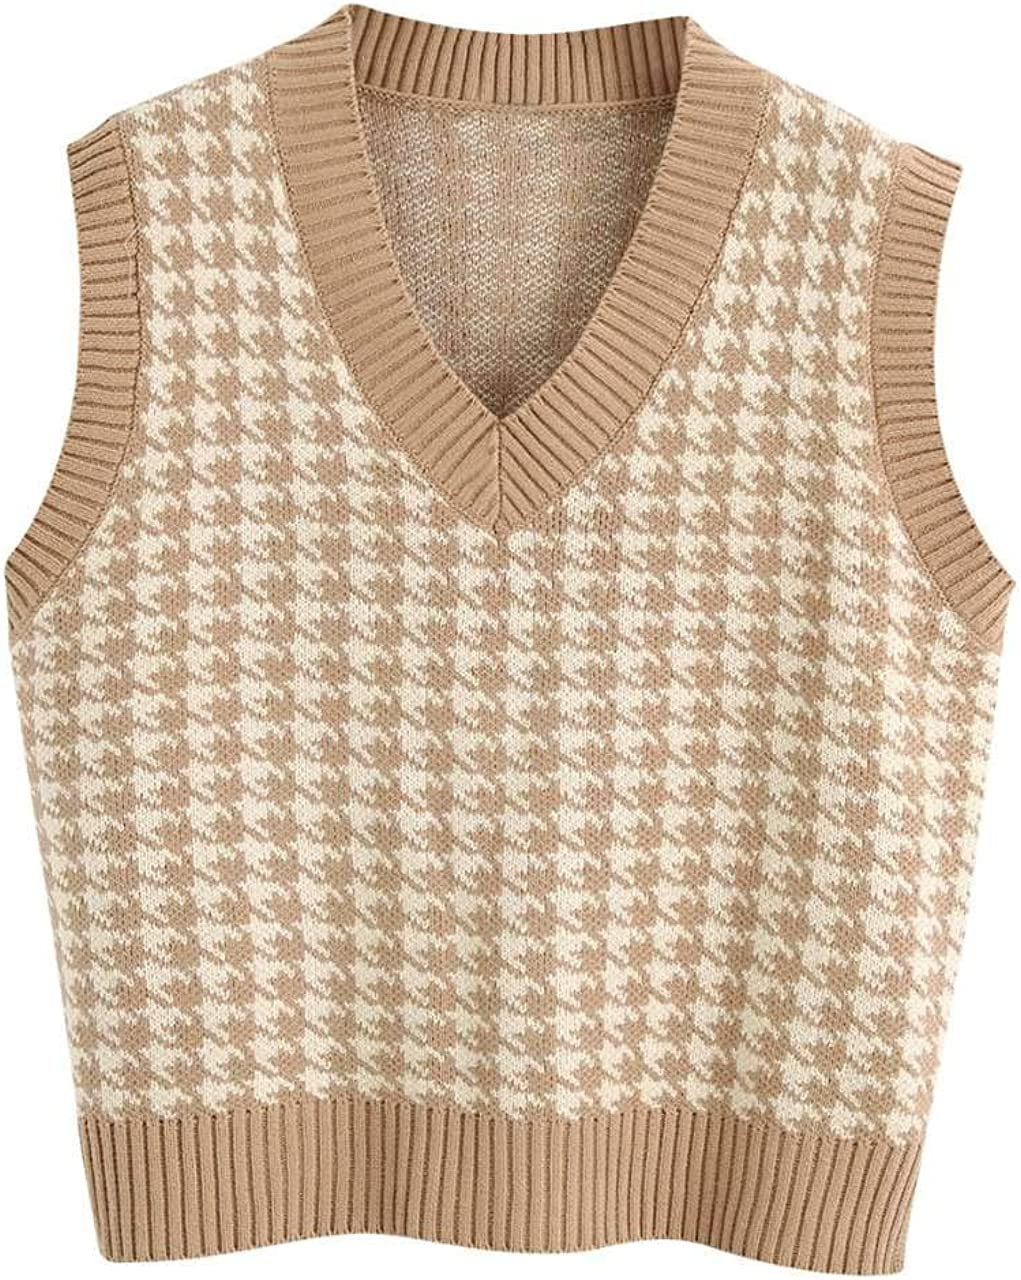 Haojiari Womens Solid Casual Knitted Pullover Sweater Vest V-Neck Sleeveless Cable Knit Tank Tops for Spring Fall Winter